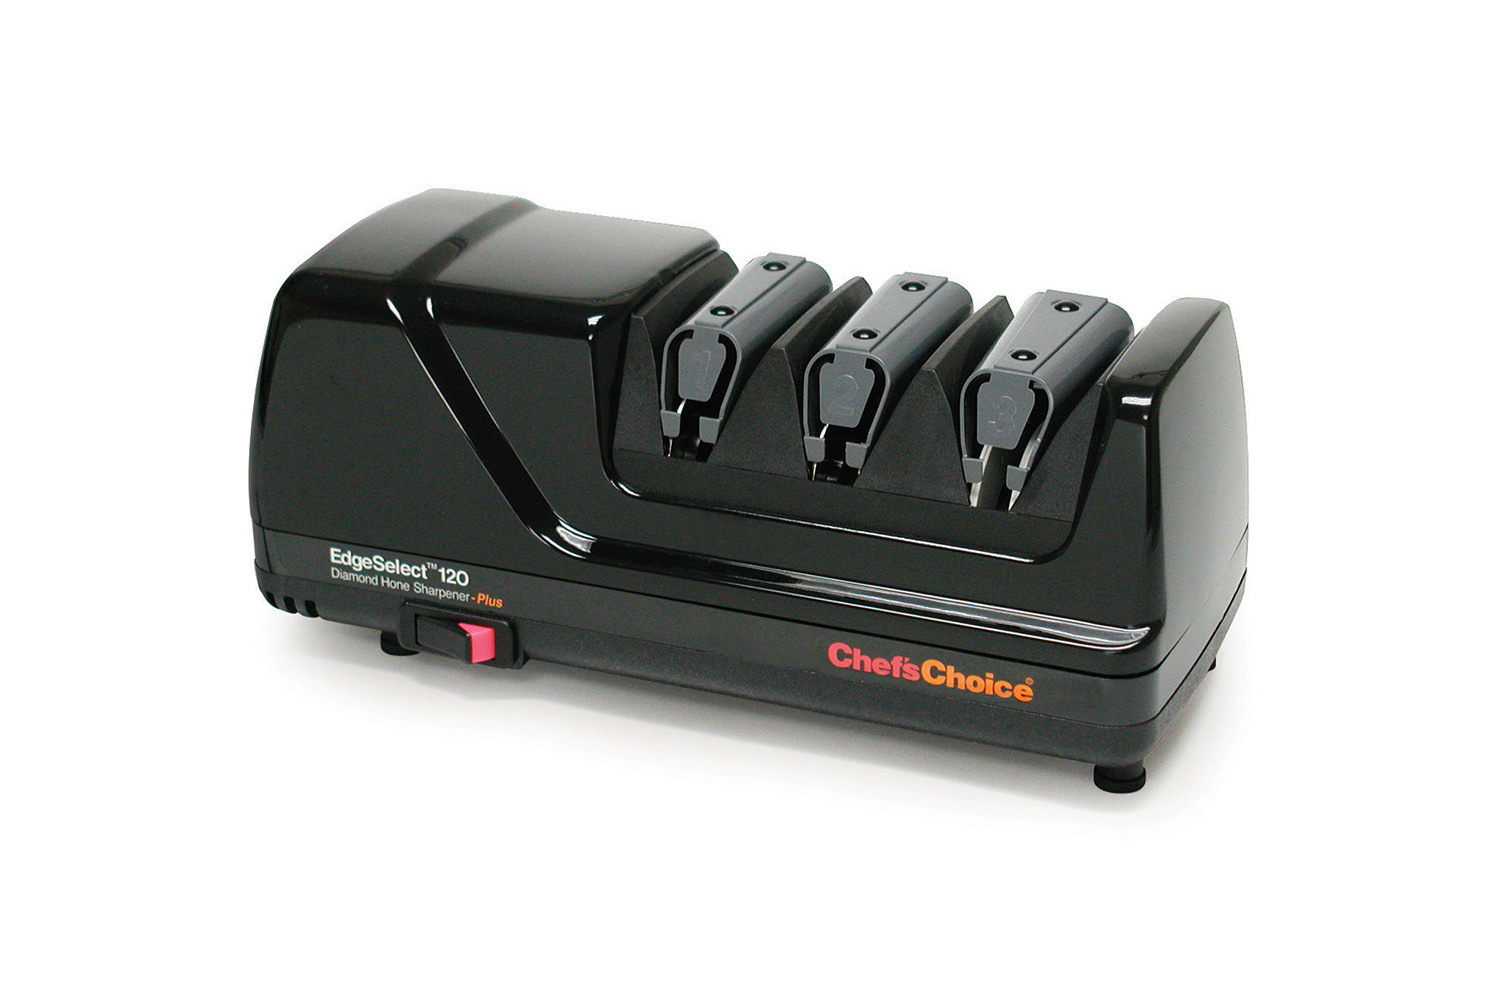 Chef'sChoice 120 Diamond Hone EdgeSelect Knife Sharpener - Black